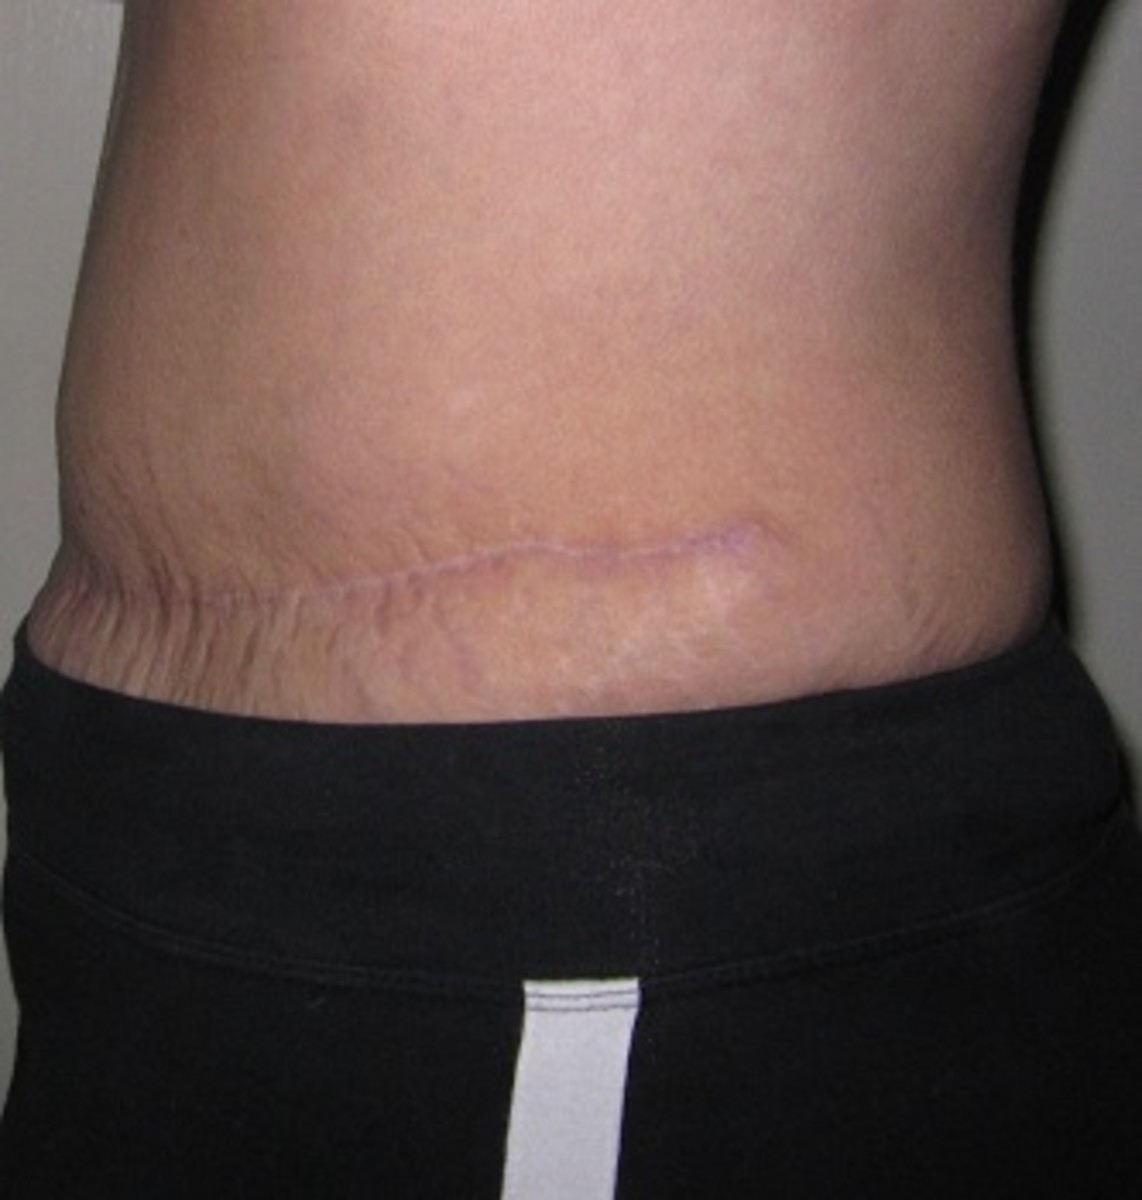 Profile view, left hip (11 months following TRAM surgery): skin bulges out a little over tighter scar skin. At end of scar line, skin forms a little chunk of extra skin like a sewing pattern that doesn't quite lay flat.